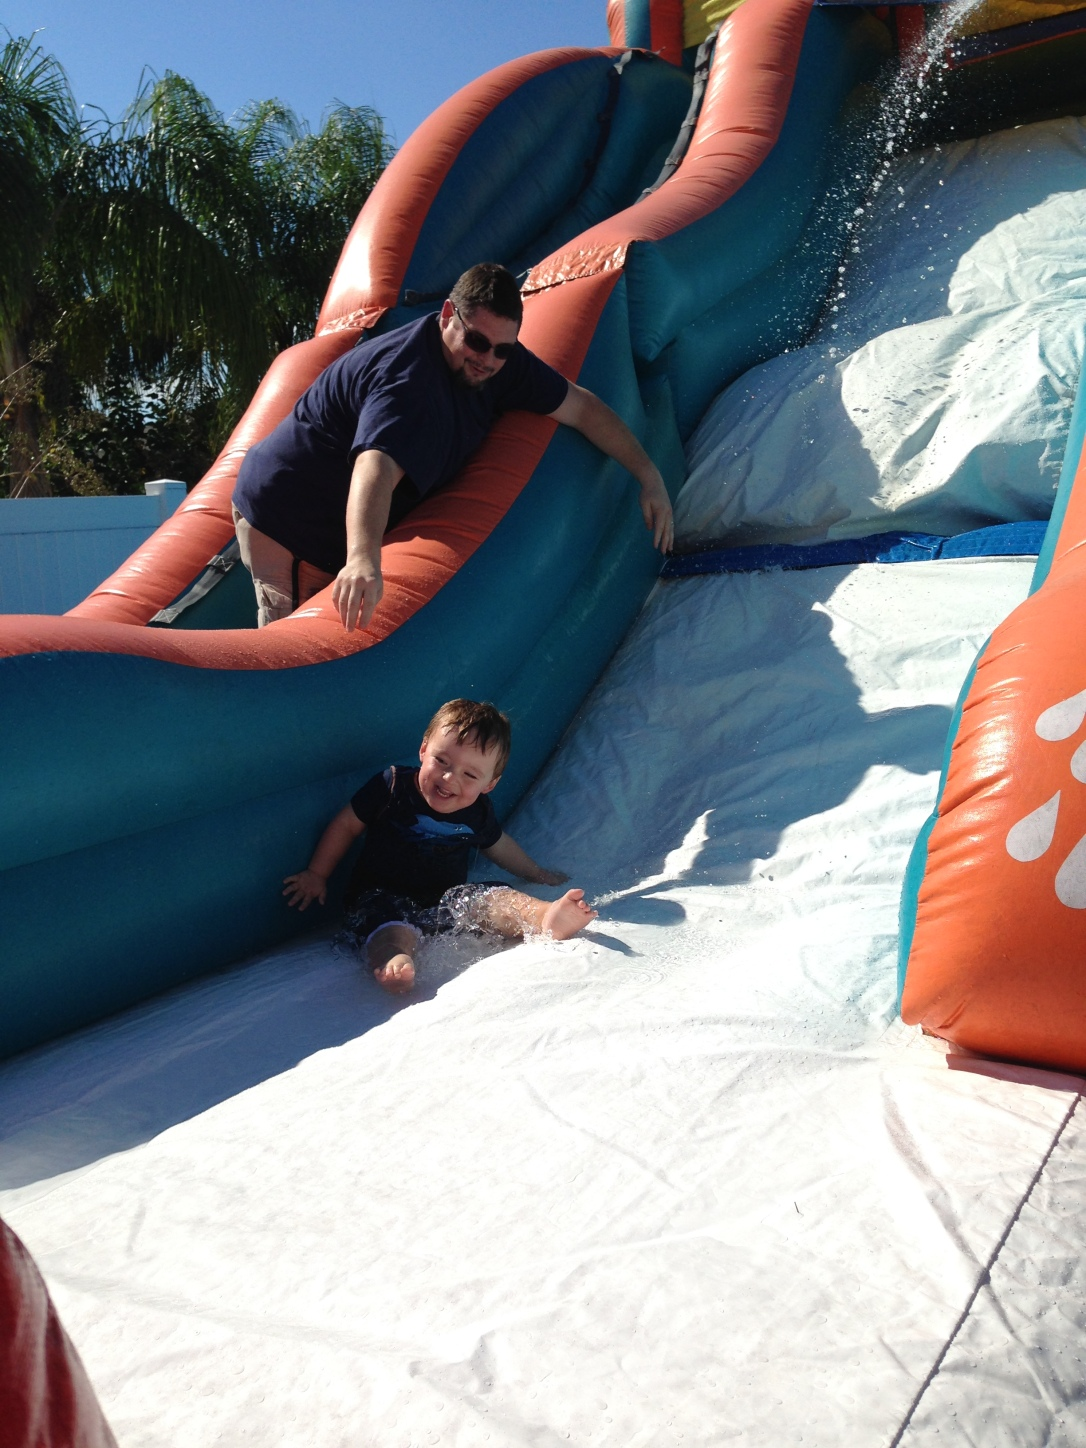 2013-10-12_bouncy slide fun_2